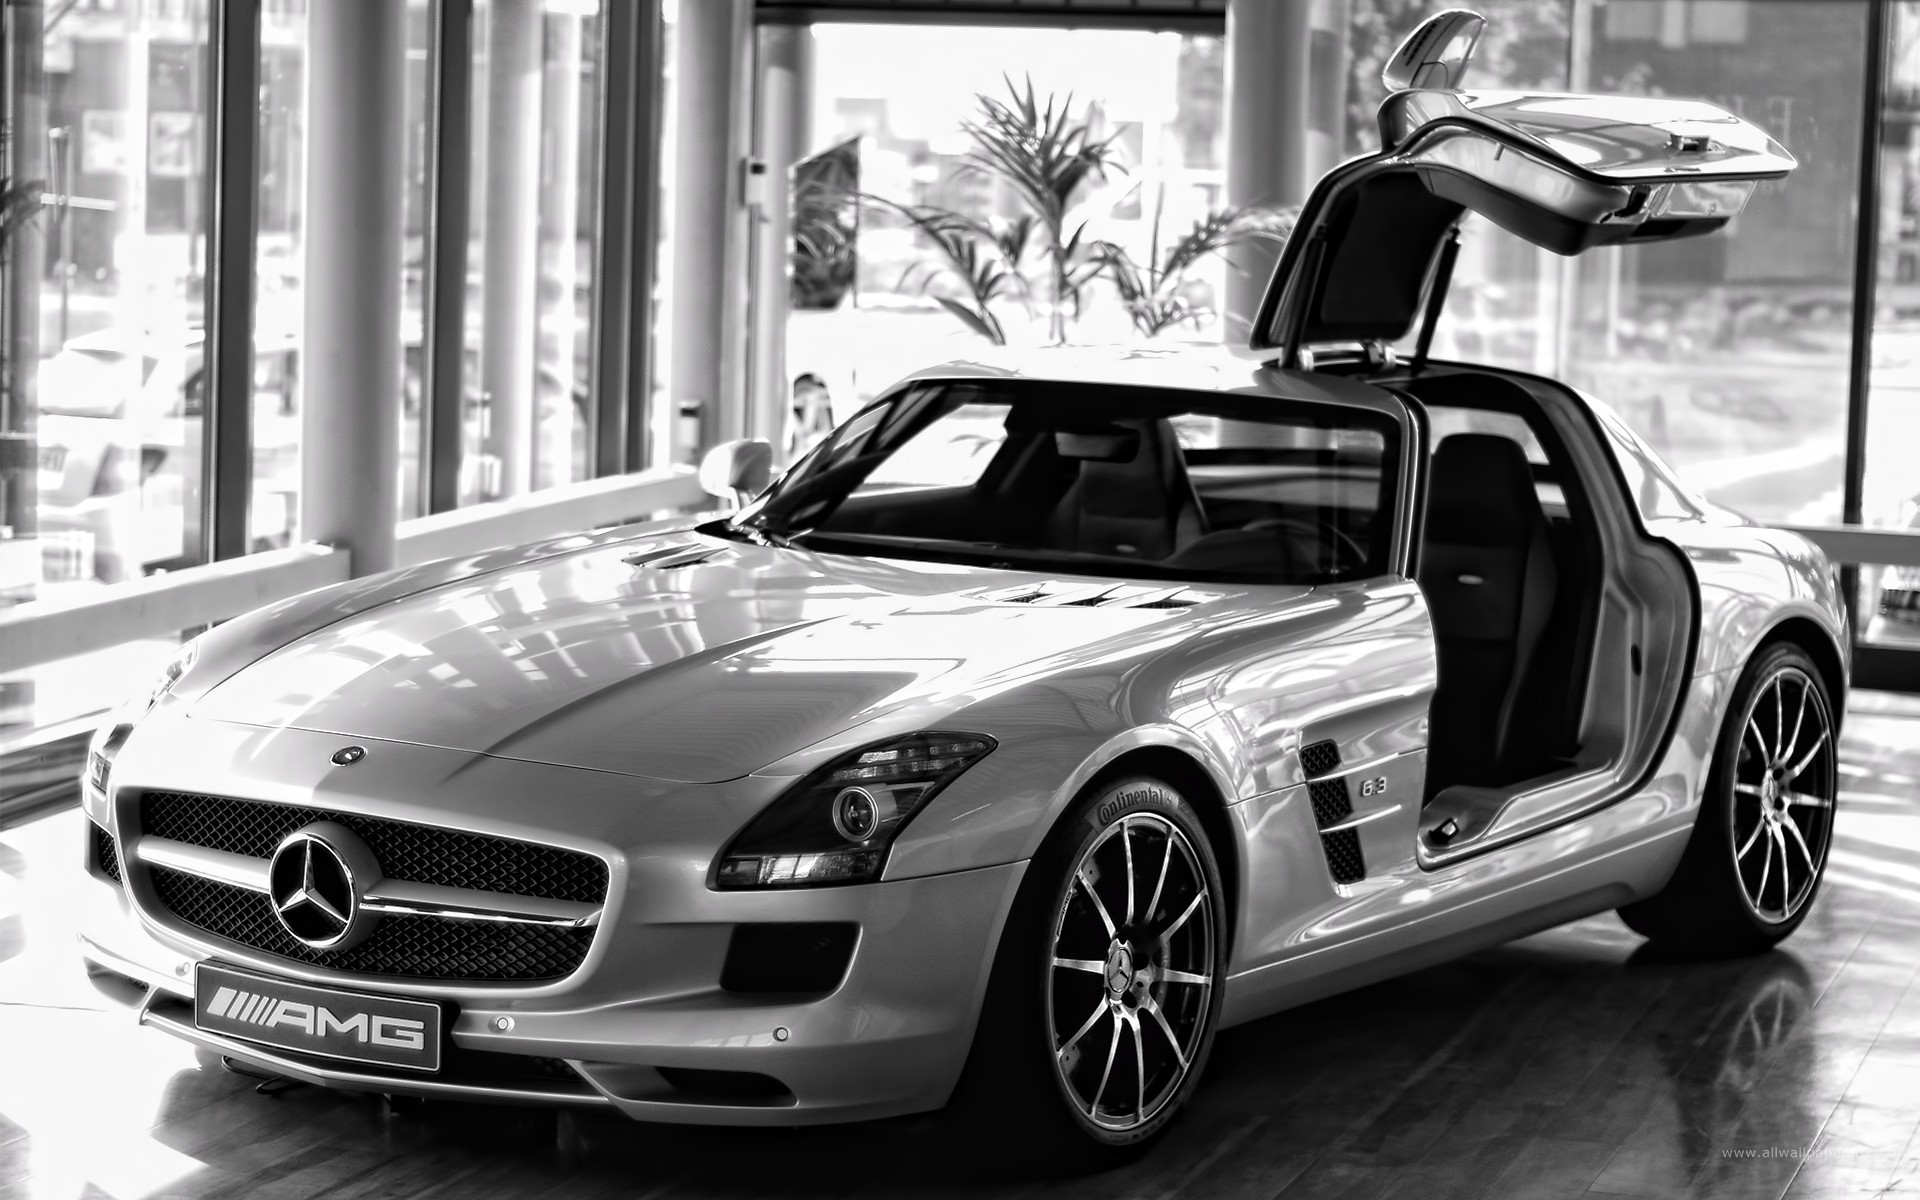 Mercedes-Benz Mercedes-Benz SLS AMG HD Wallpaper